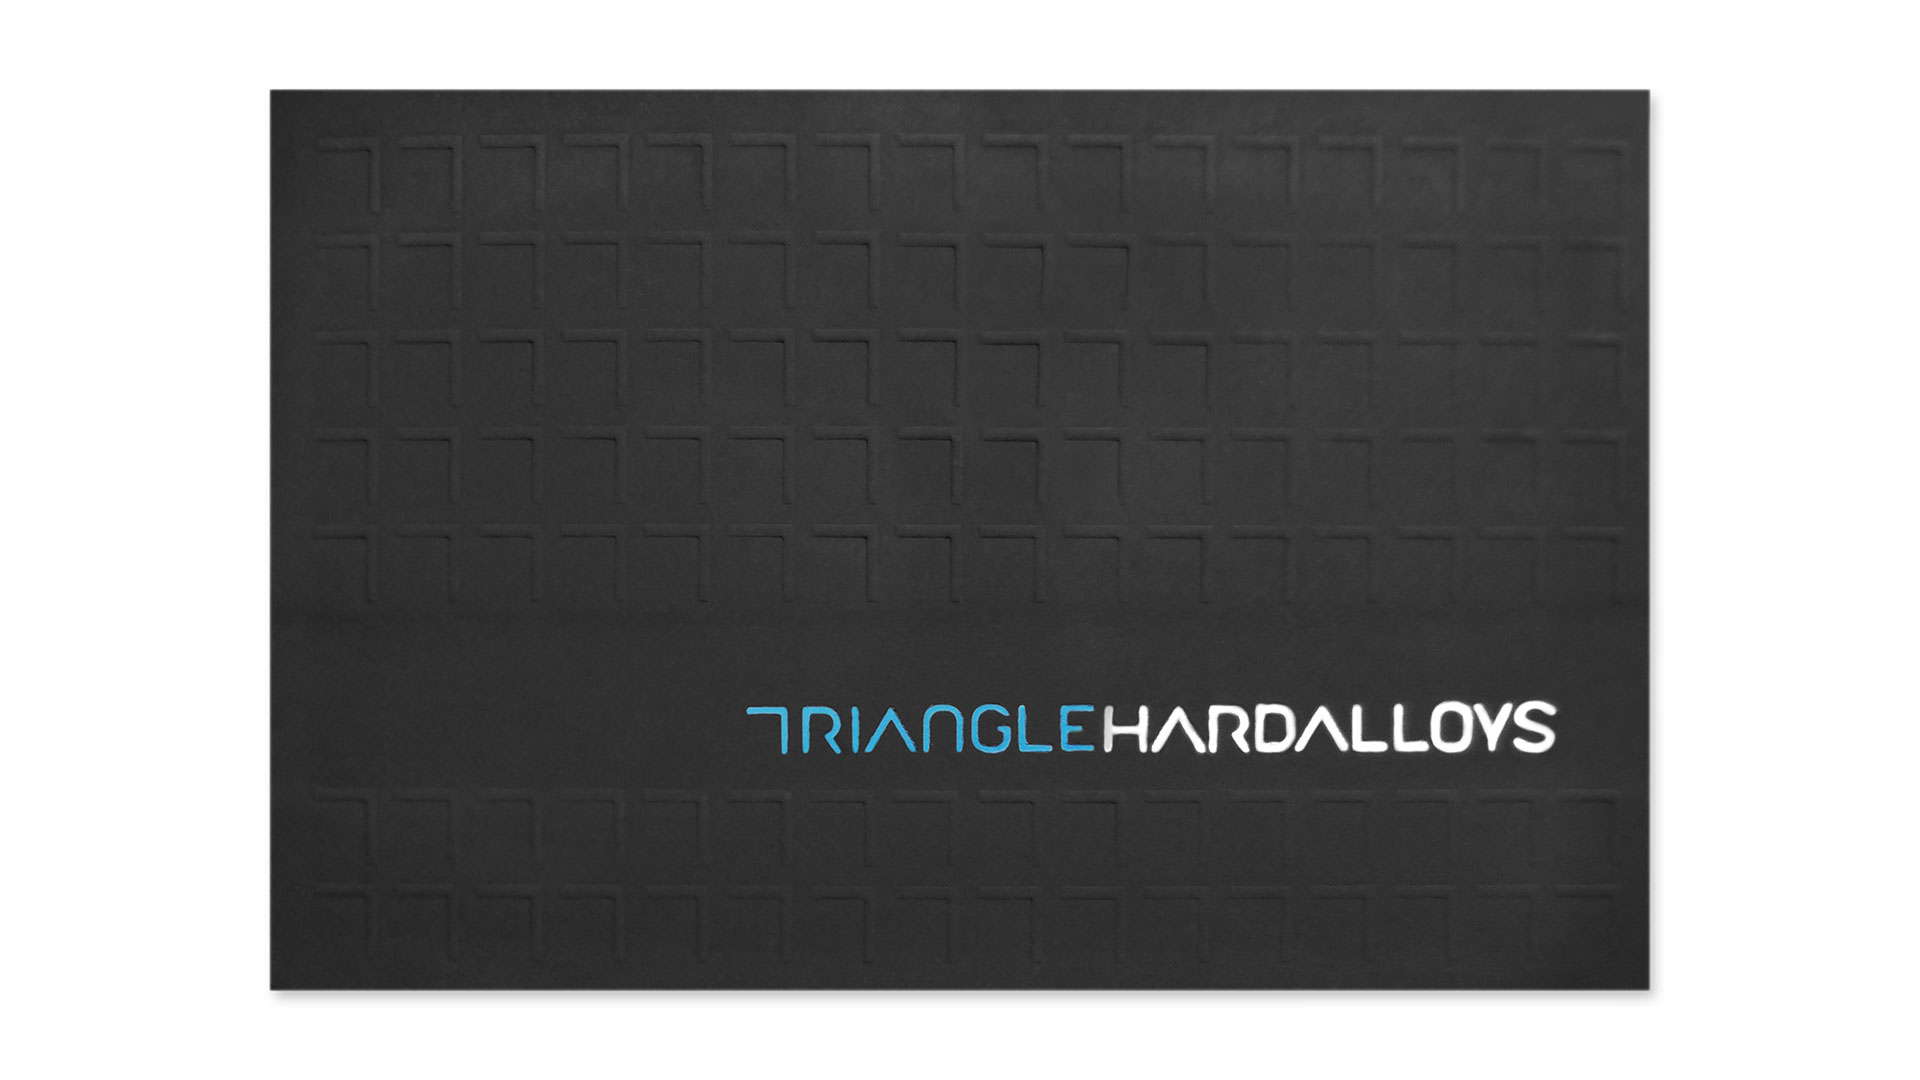 Triangle hard alloys business card designed by burdgecooper 1000 printing method foil stamp blind emboss number of colors 2 colors blue silver foils finishing and binding double thick gilded edging colourmoves